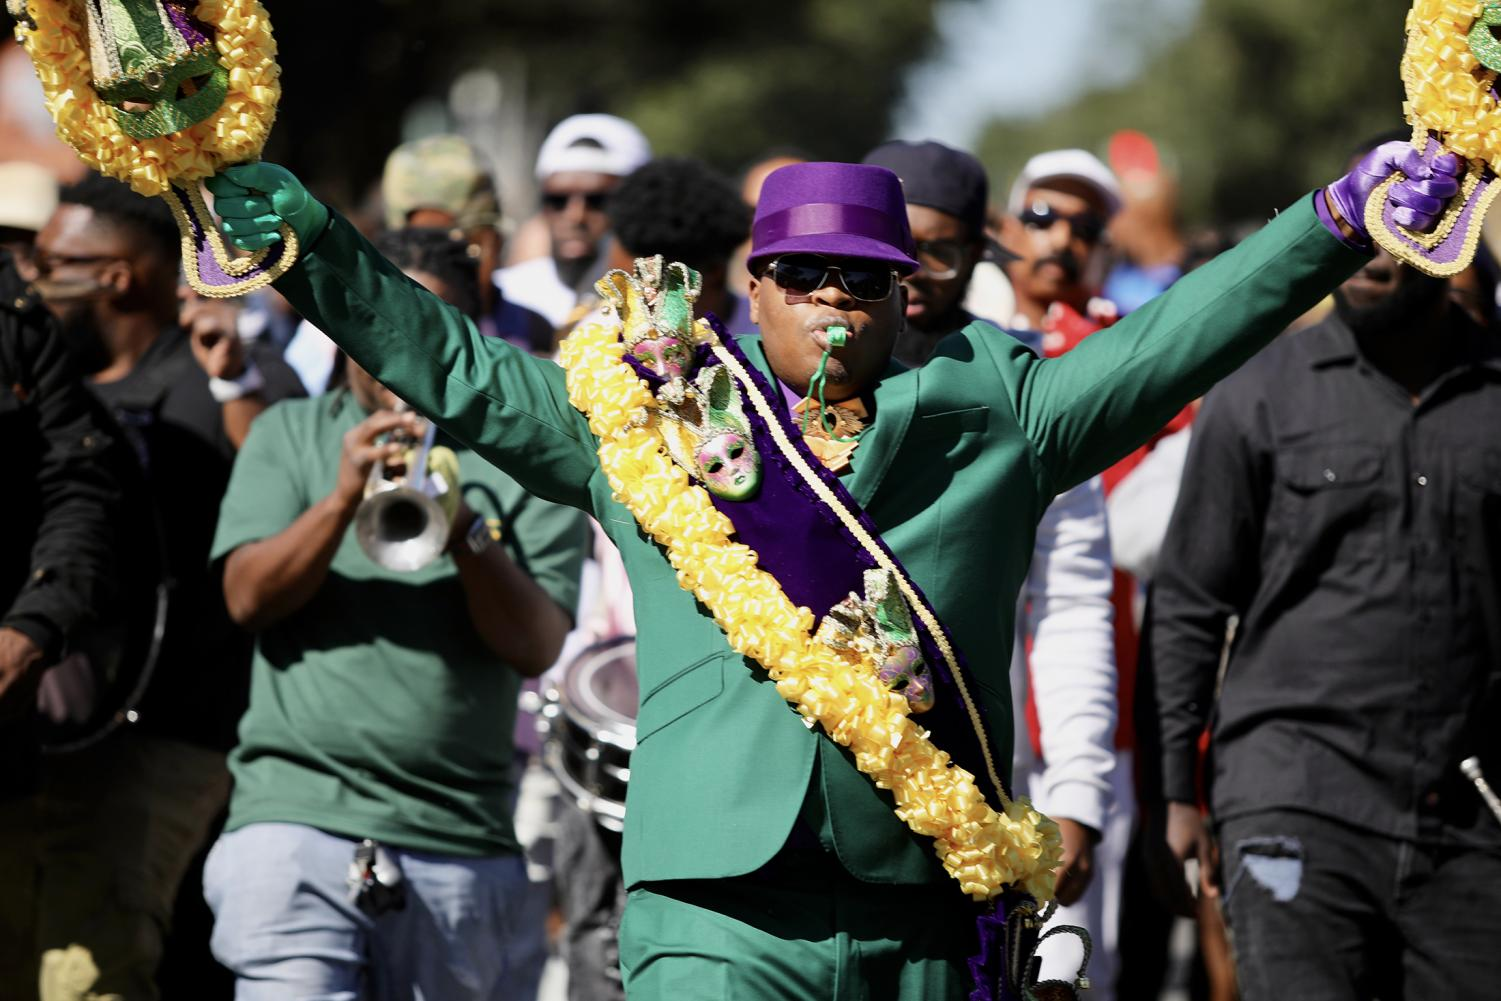 A member of the We Are One court marching in Mardi Gras colors on St. Charles St. on Nov. 3, 2019.